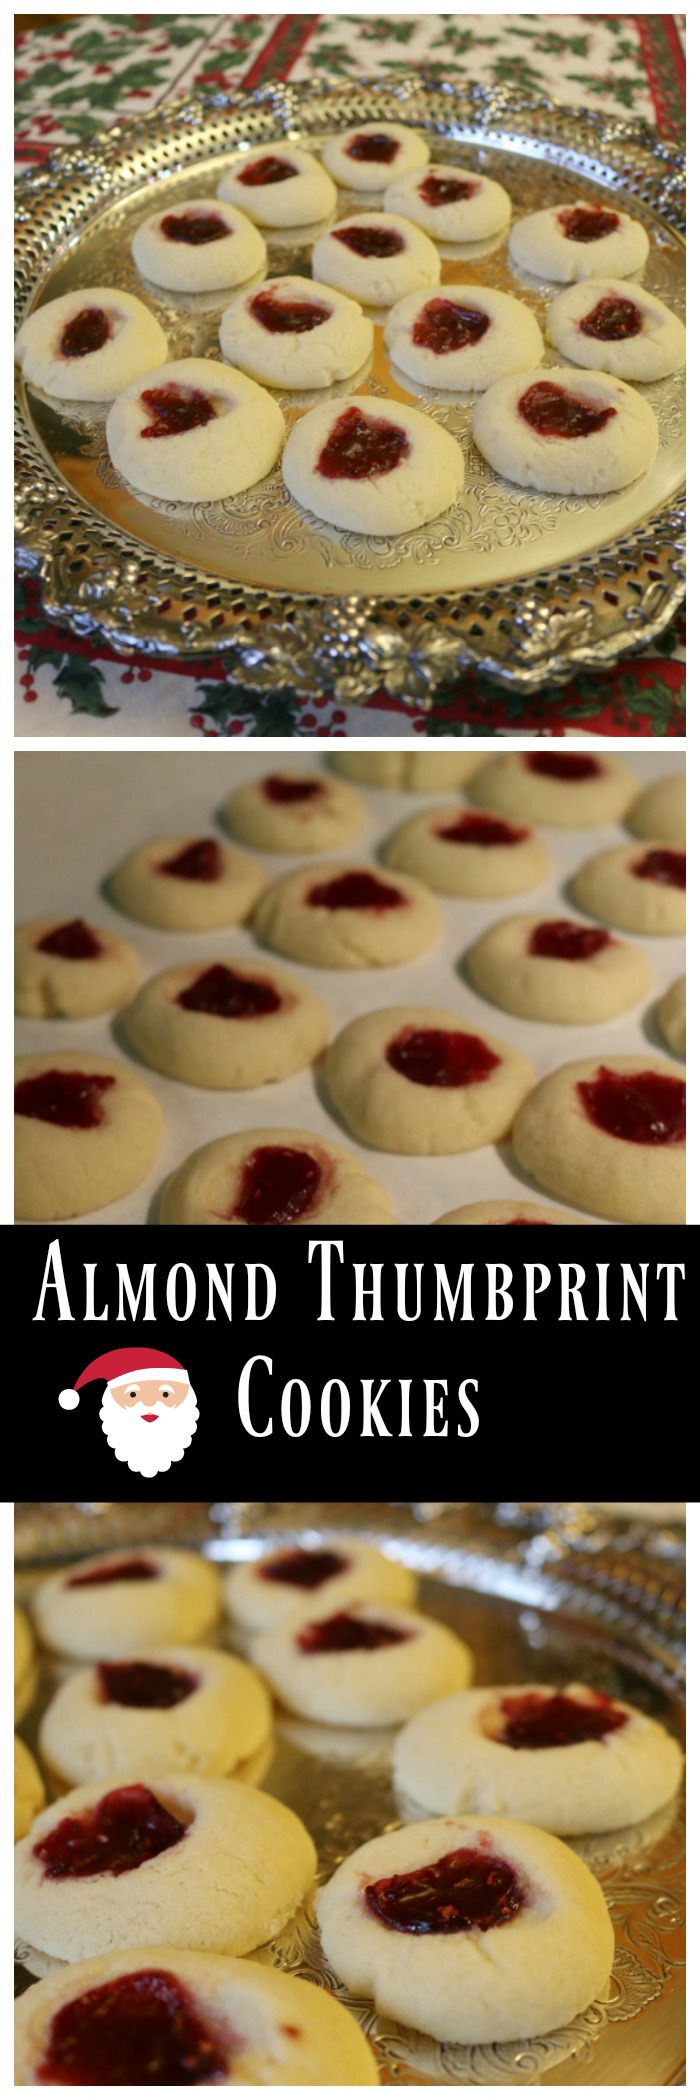 Almond Thumbprint Cookies - Easy Recipe - Holiday Cookies